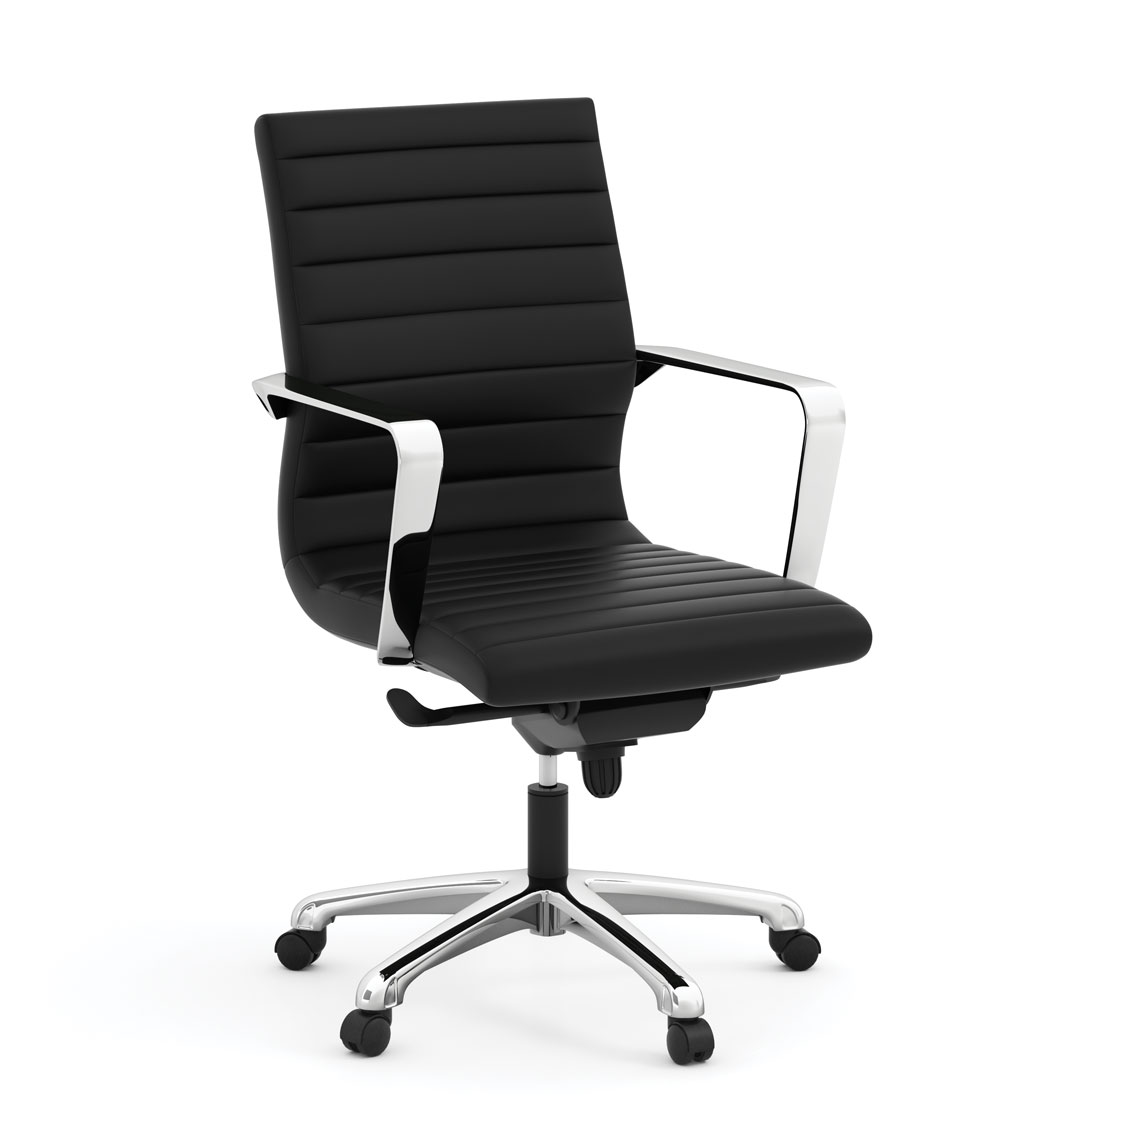 OfficeSource Tre Collection Executive Mid Back Chair with Chrome Frame